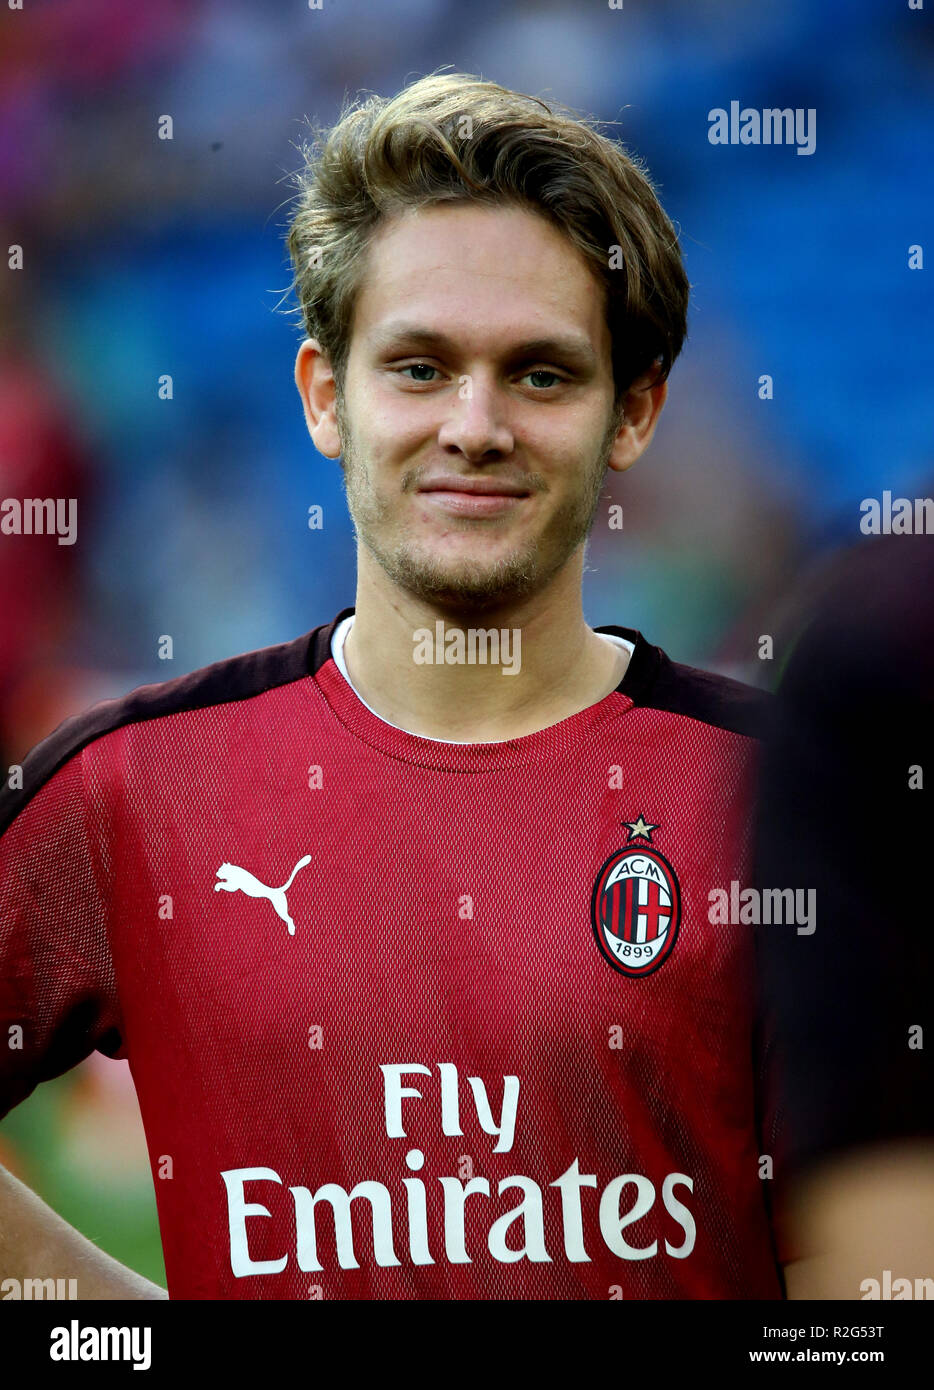 Alen Halilovic High Resolution Stock Photography and Images - Alamy